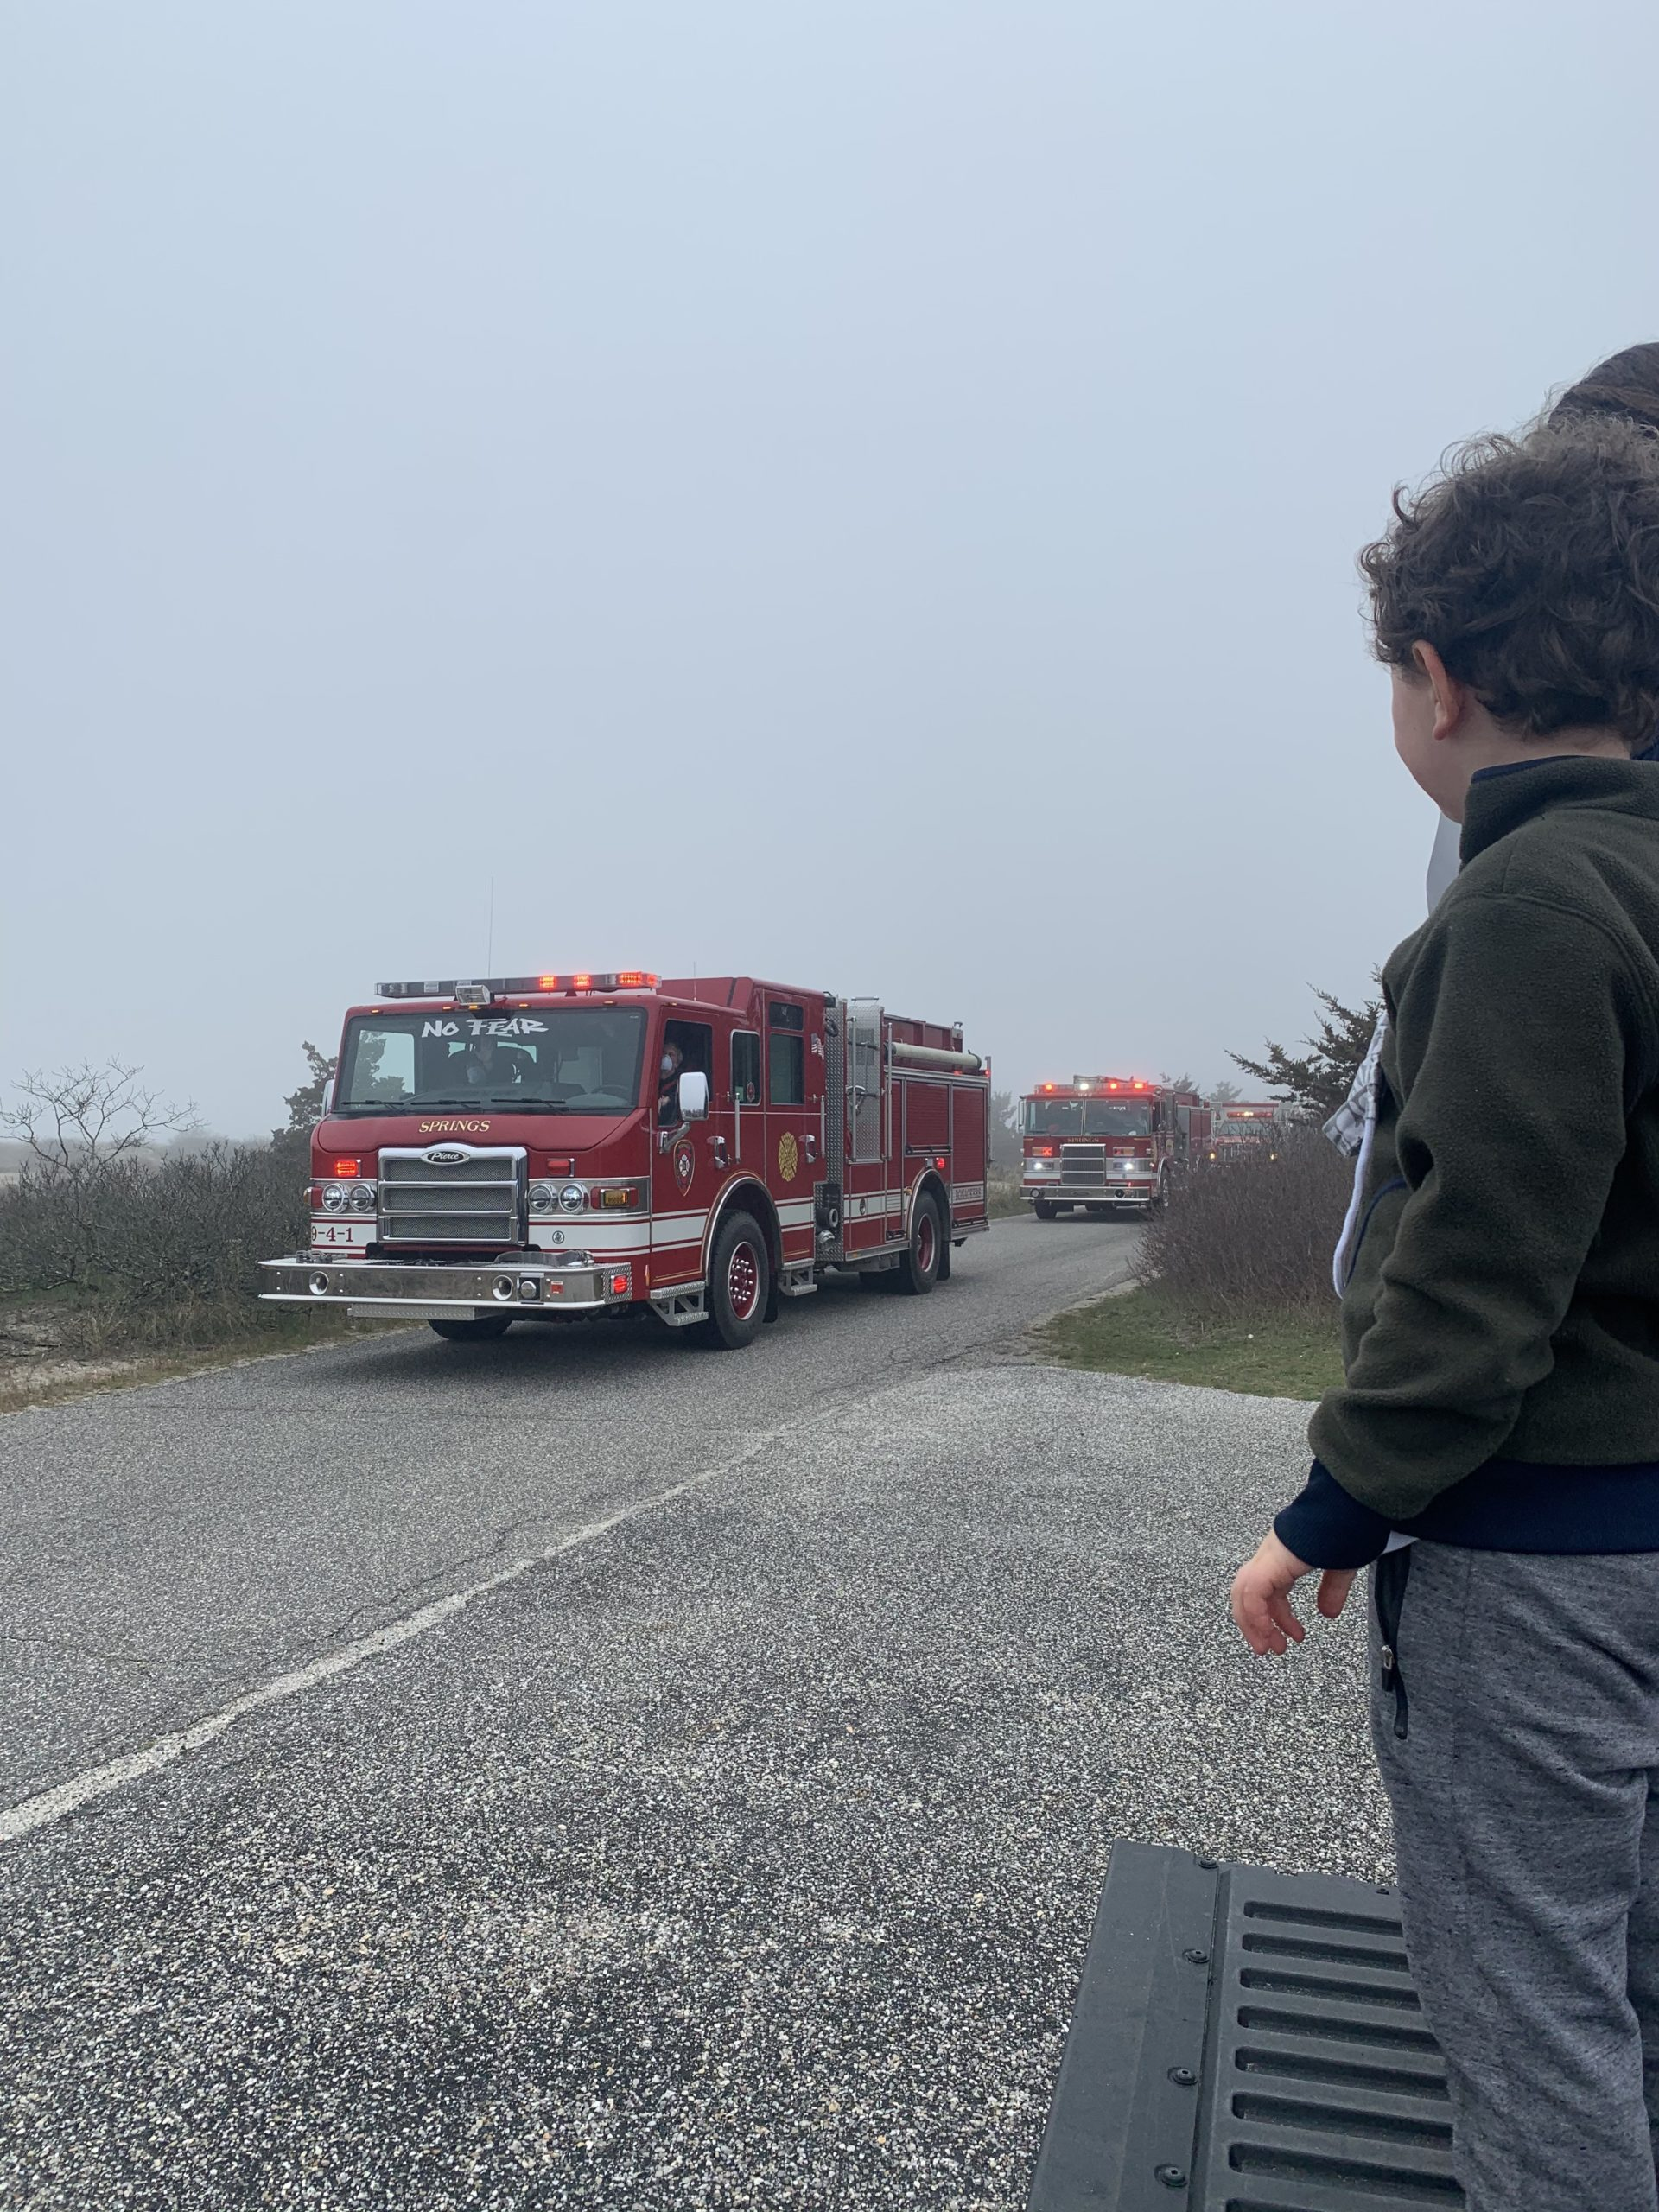 Volunteers with the Springs Fire Department lead a Spirit Drive at Maidstone Beach where students and families were encouraged to maintain social distance while waving to teachers and administrators.